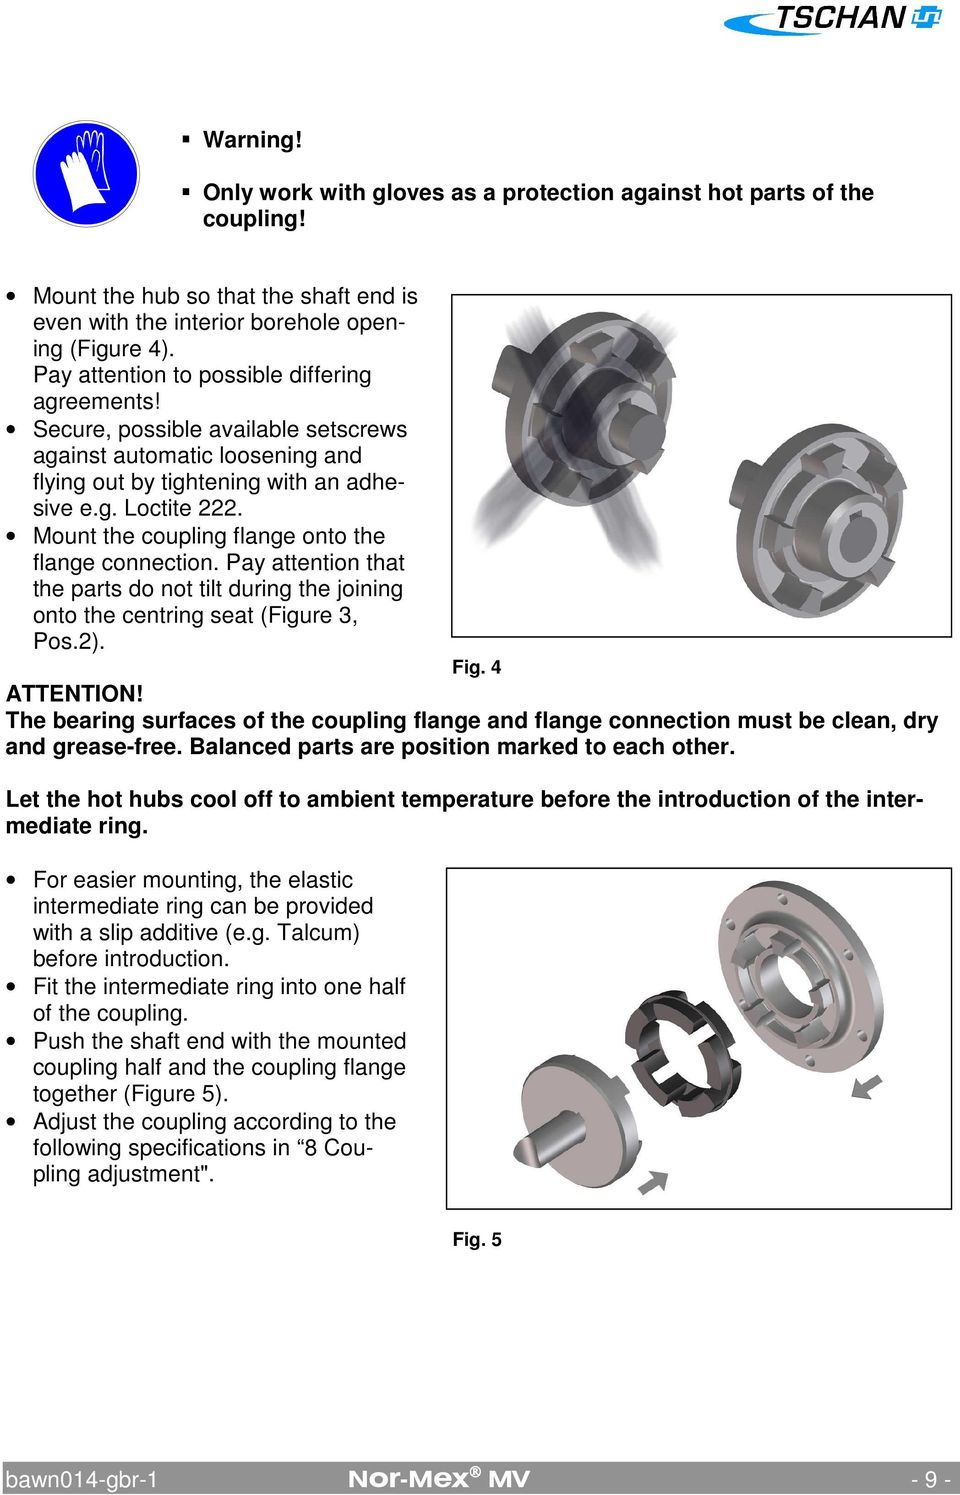 Mount the coupling flange onto the flange connection. Pay attention that the parts do not tilt during the joining onto the centring seat (Figure 3, Pos.2). Fig. 4 ATTENTION!